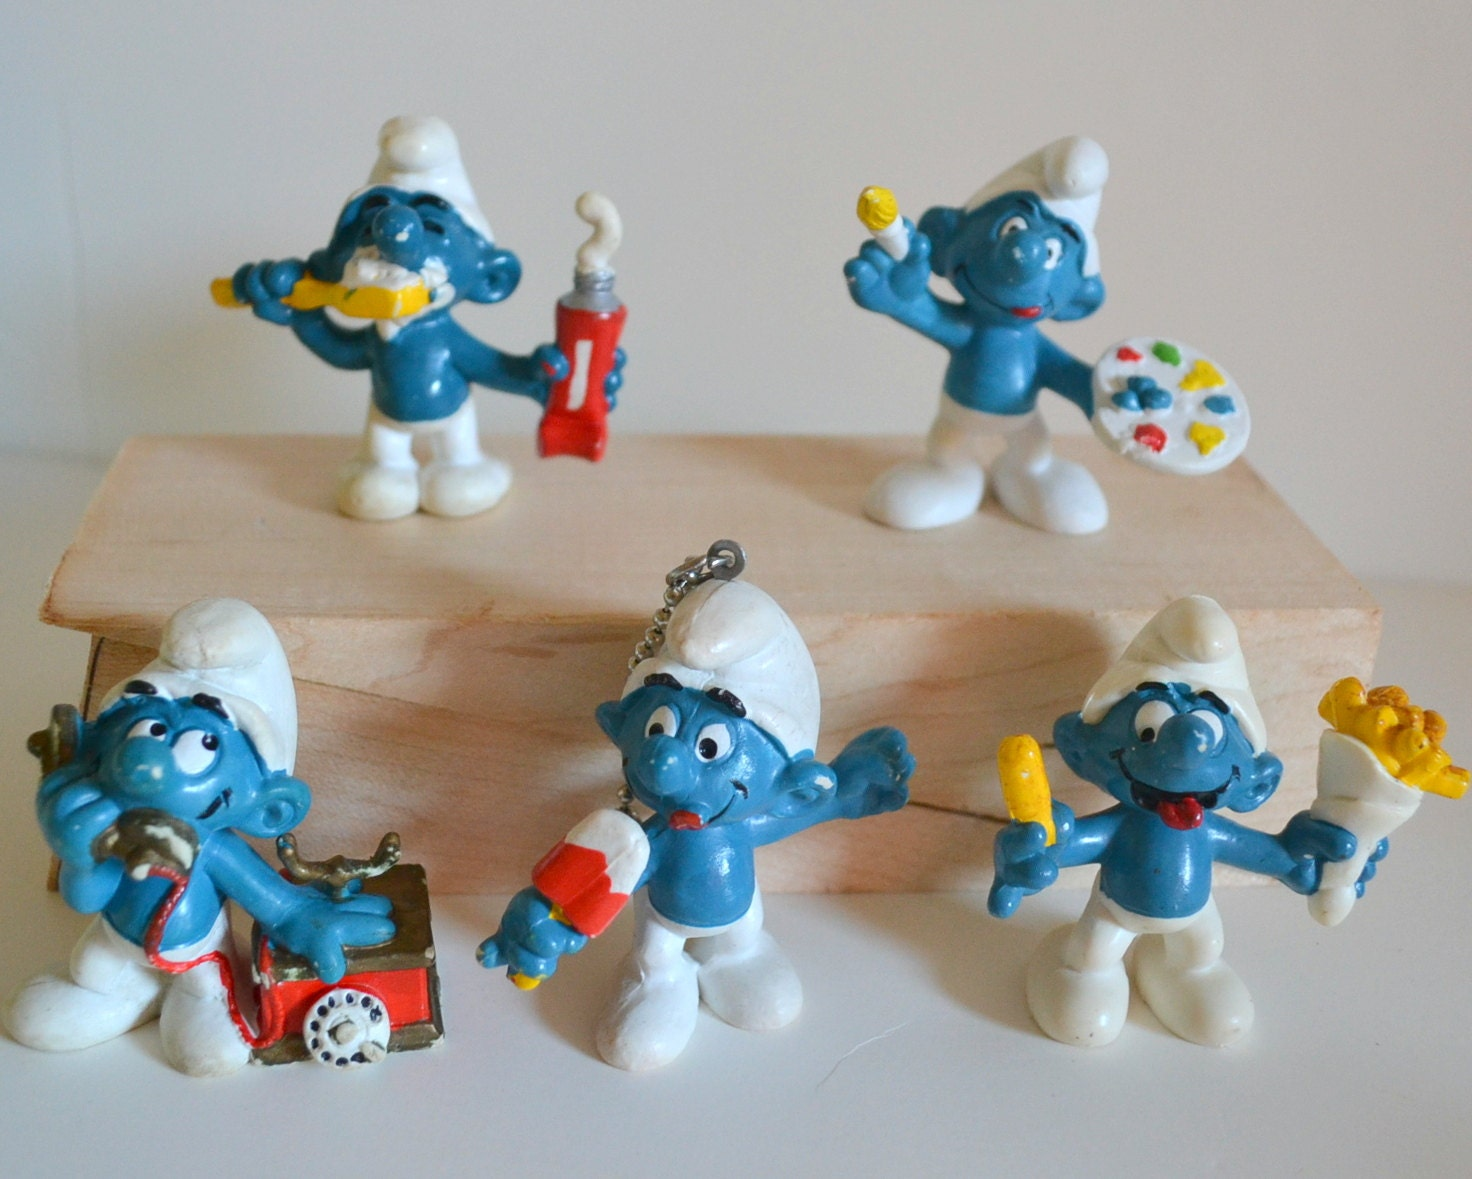 Toys From The 1980s : Smurfs vintage toys lot of figures painting food phone